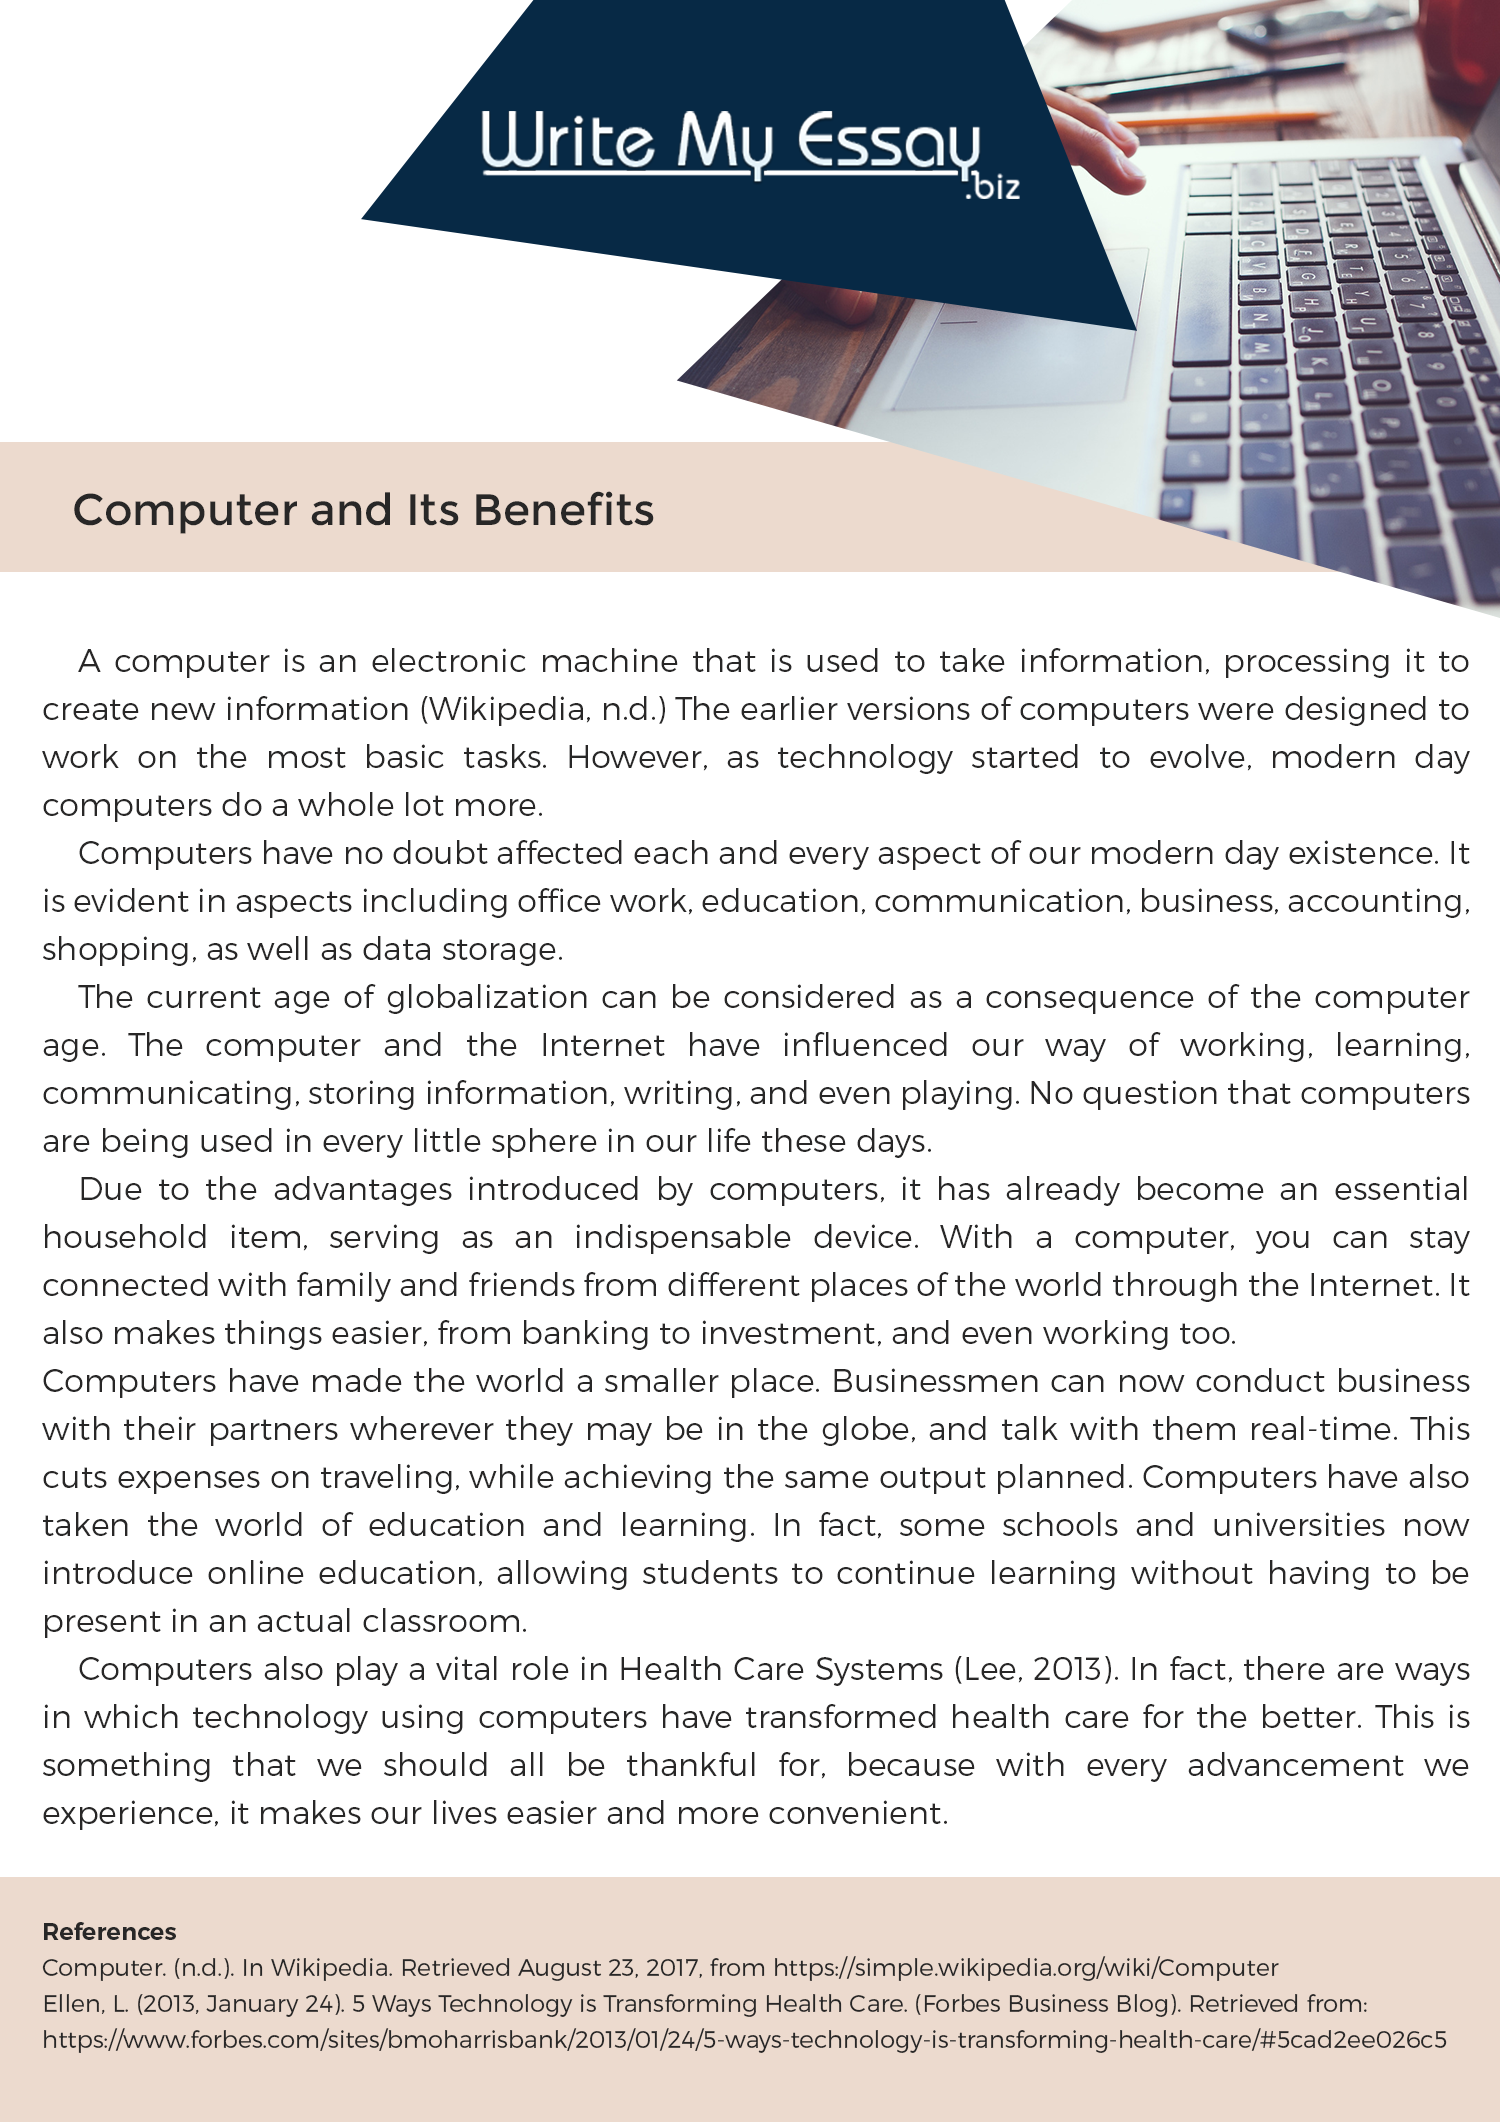 005 Essay Example On Computer And Its Benefits Fearsome Security Privacy Skills College Science Full